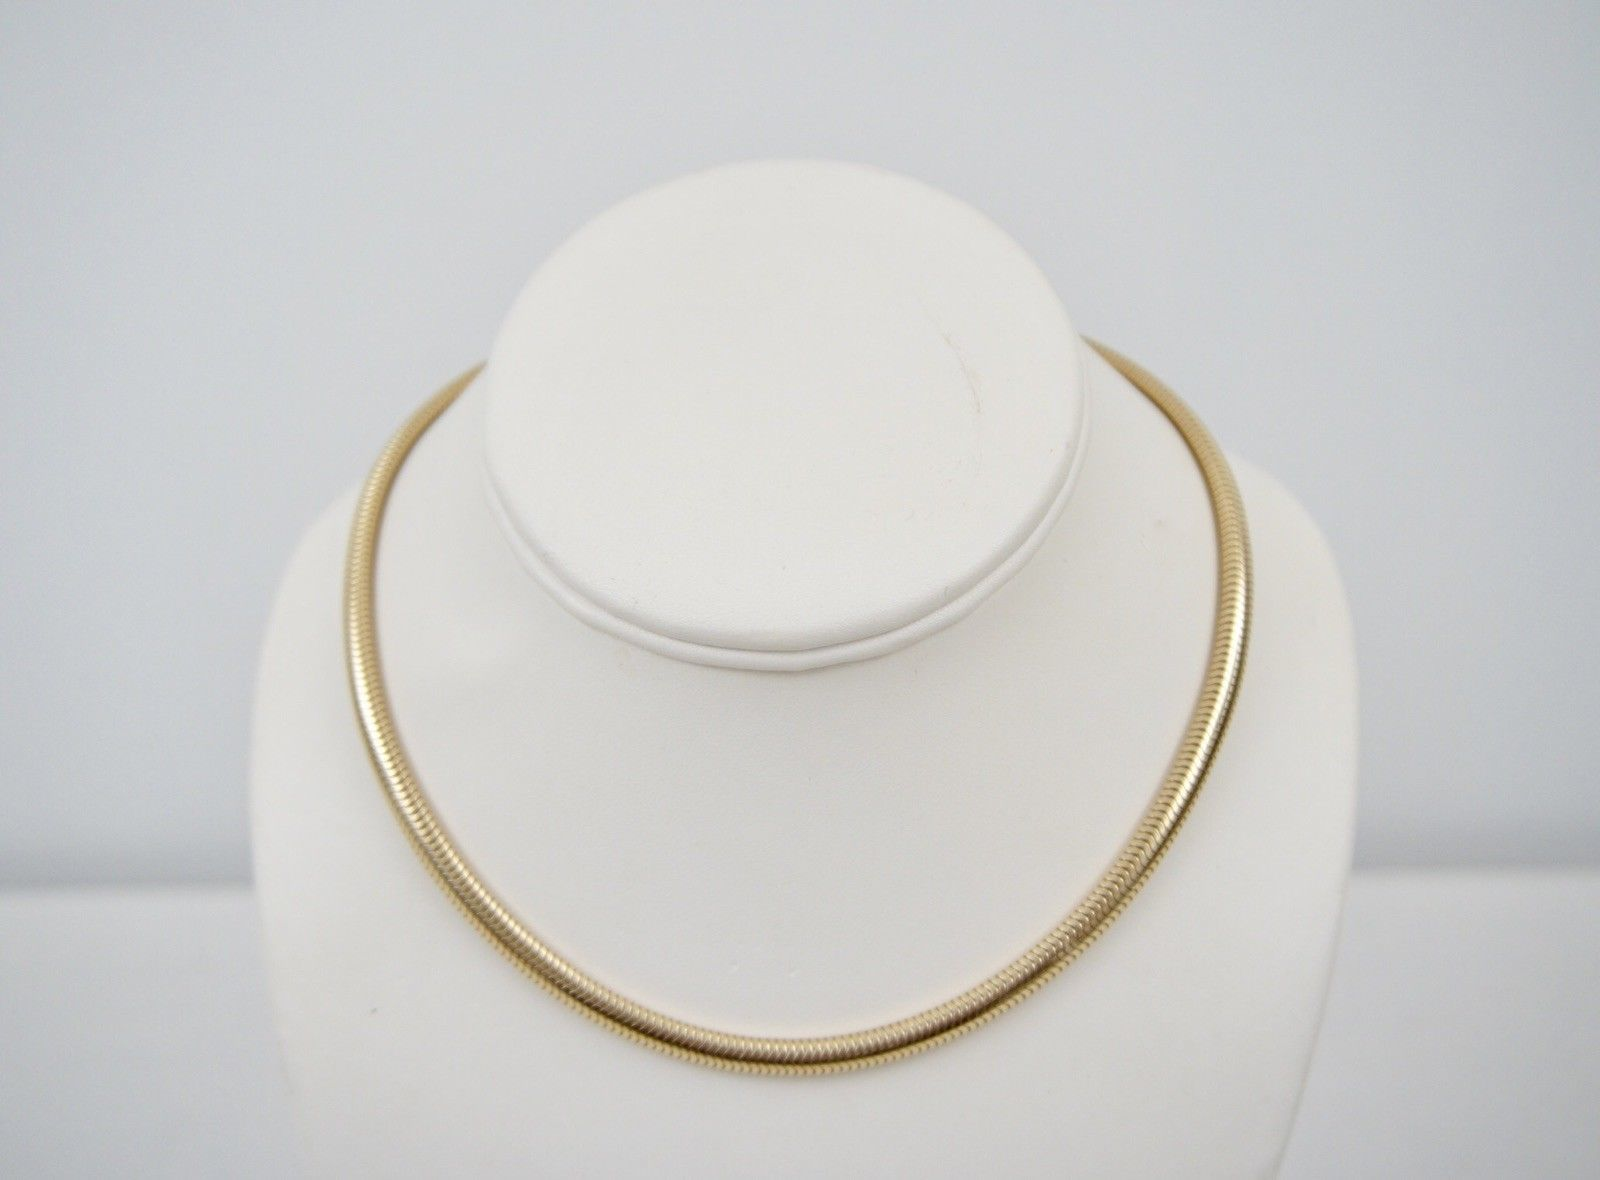 2c9bf1fa3 Tiffany & Co 14K Yellow Gold 5 MM Snake Shain 15 3/4 inches Necklace